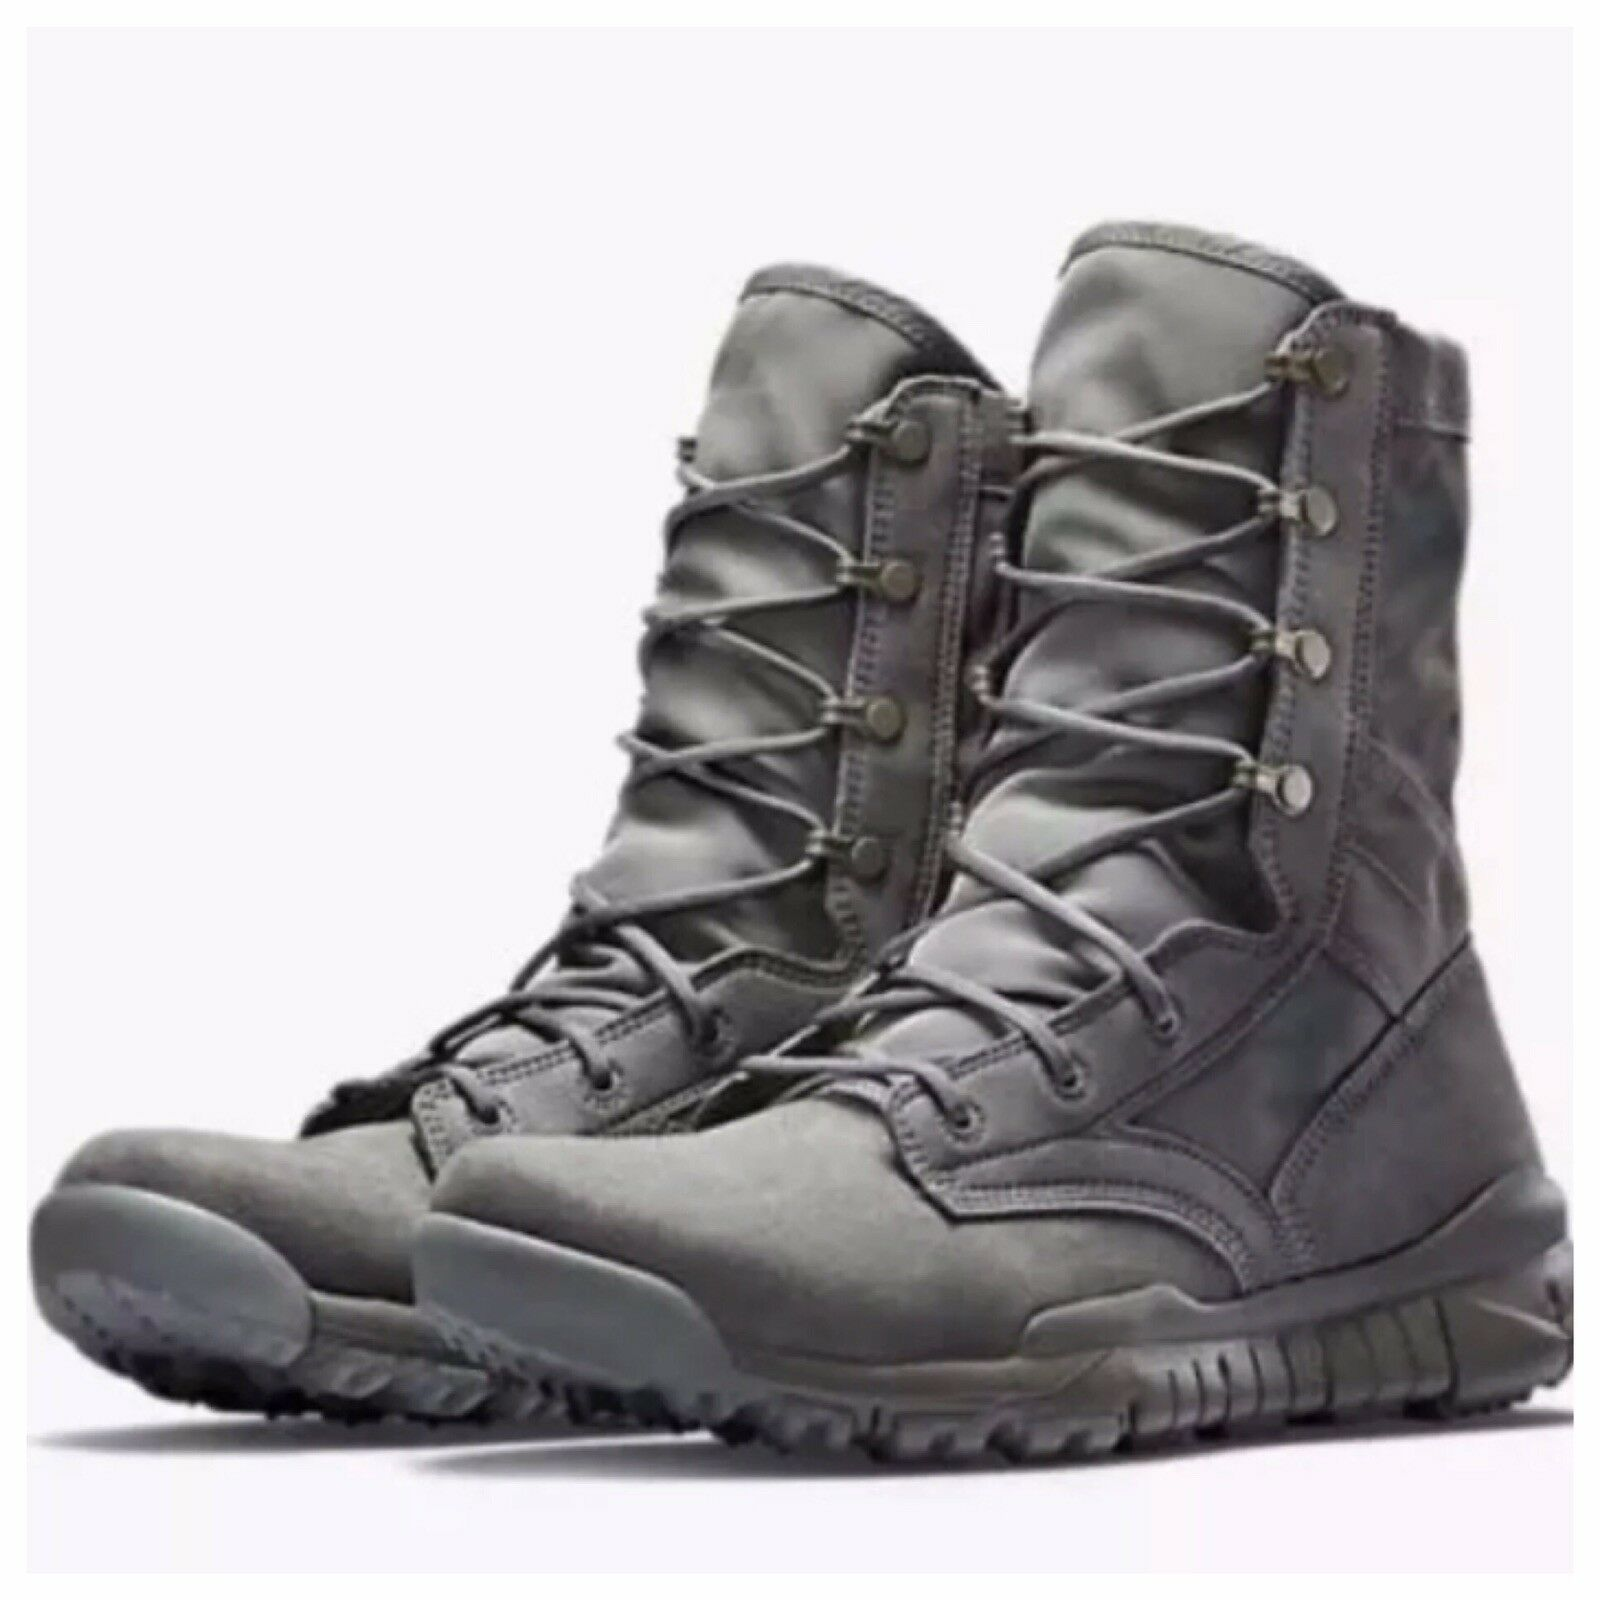 Nike SFB 8  Special Field Boots Sage Green Combat Military 329798 200 Size 14